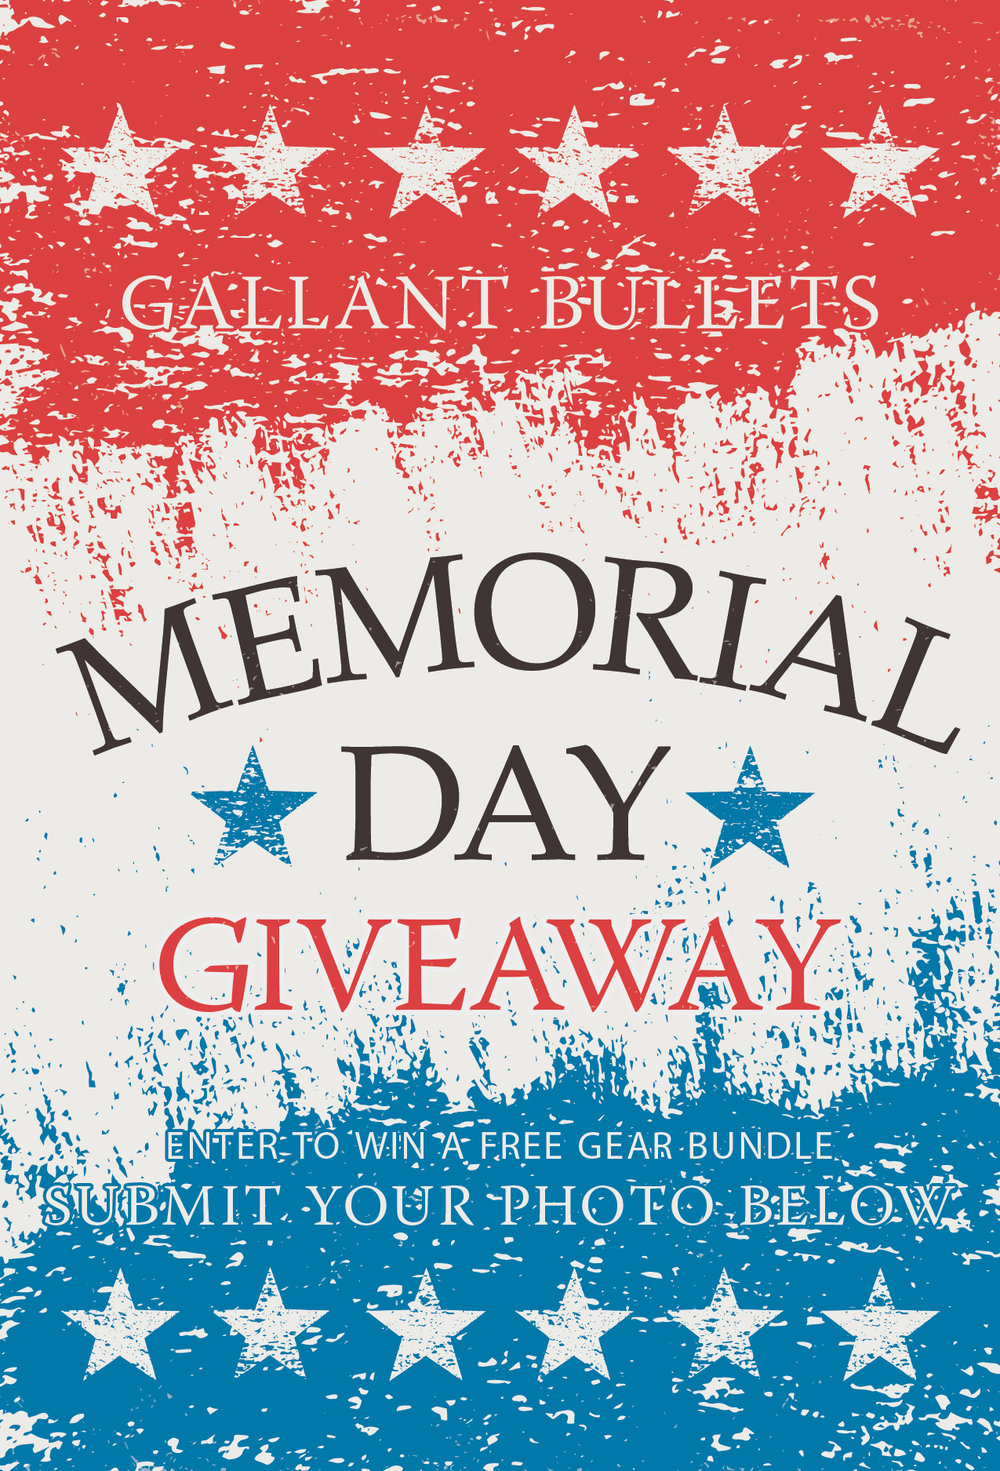 Gallant Bullets 2017 Memorial Day Photo Contest Giveaway